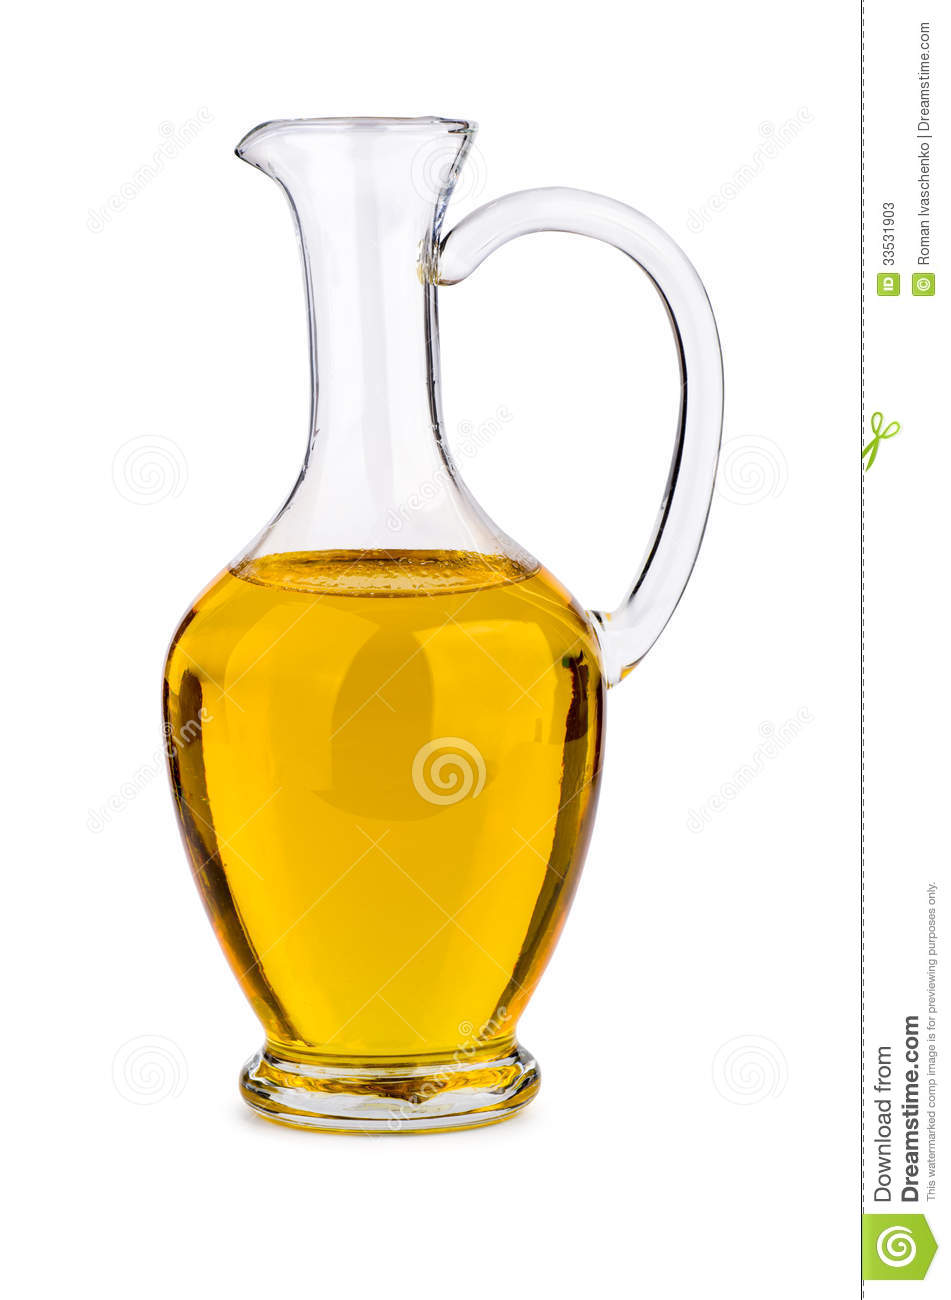 L Organic Sunflower Oil In Glass Bottle